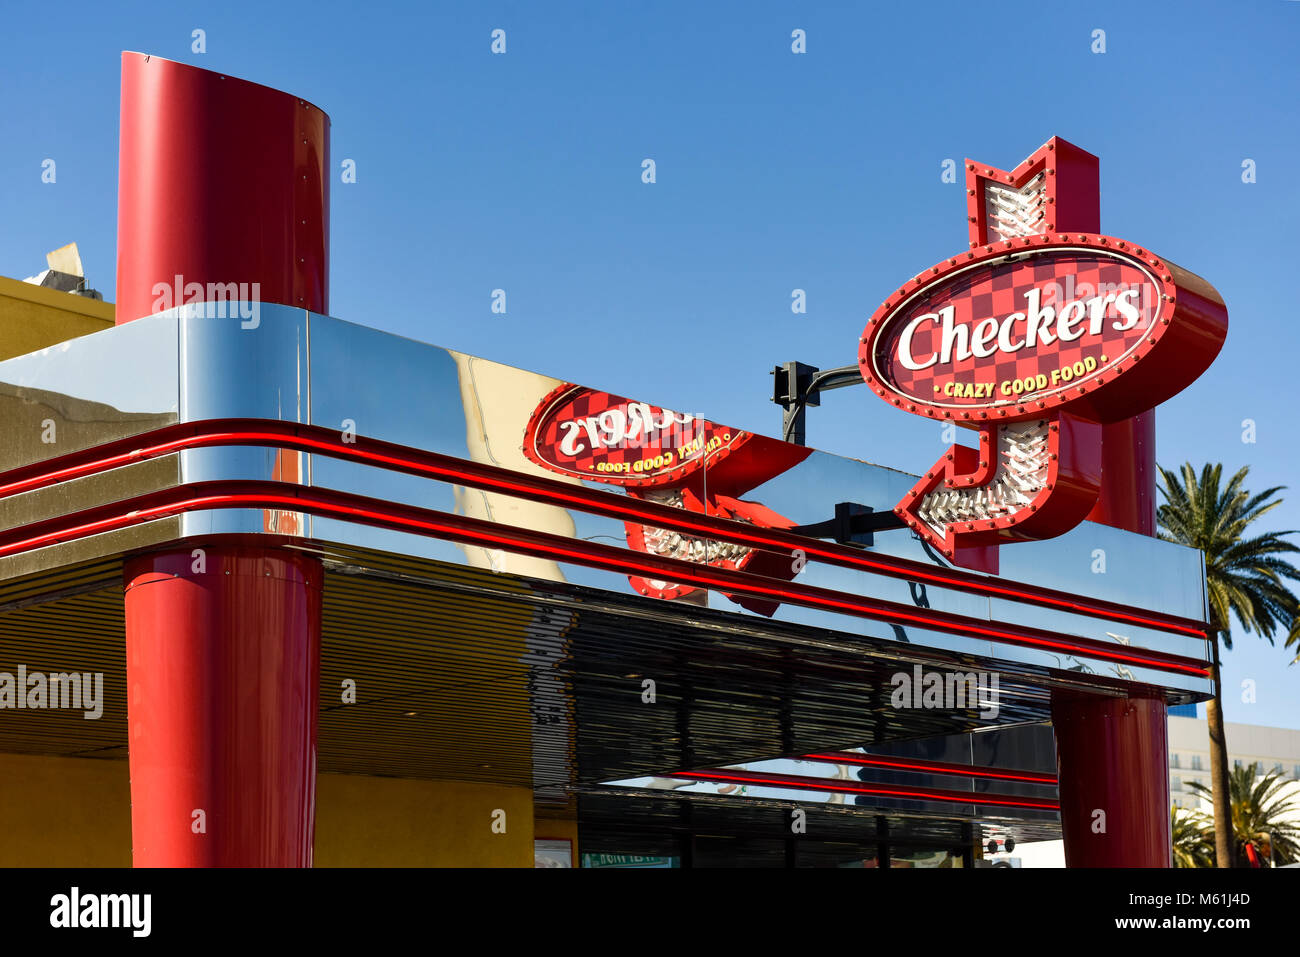 Checkers fast food restaurant sign and storefront Stock Photo